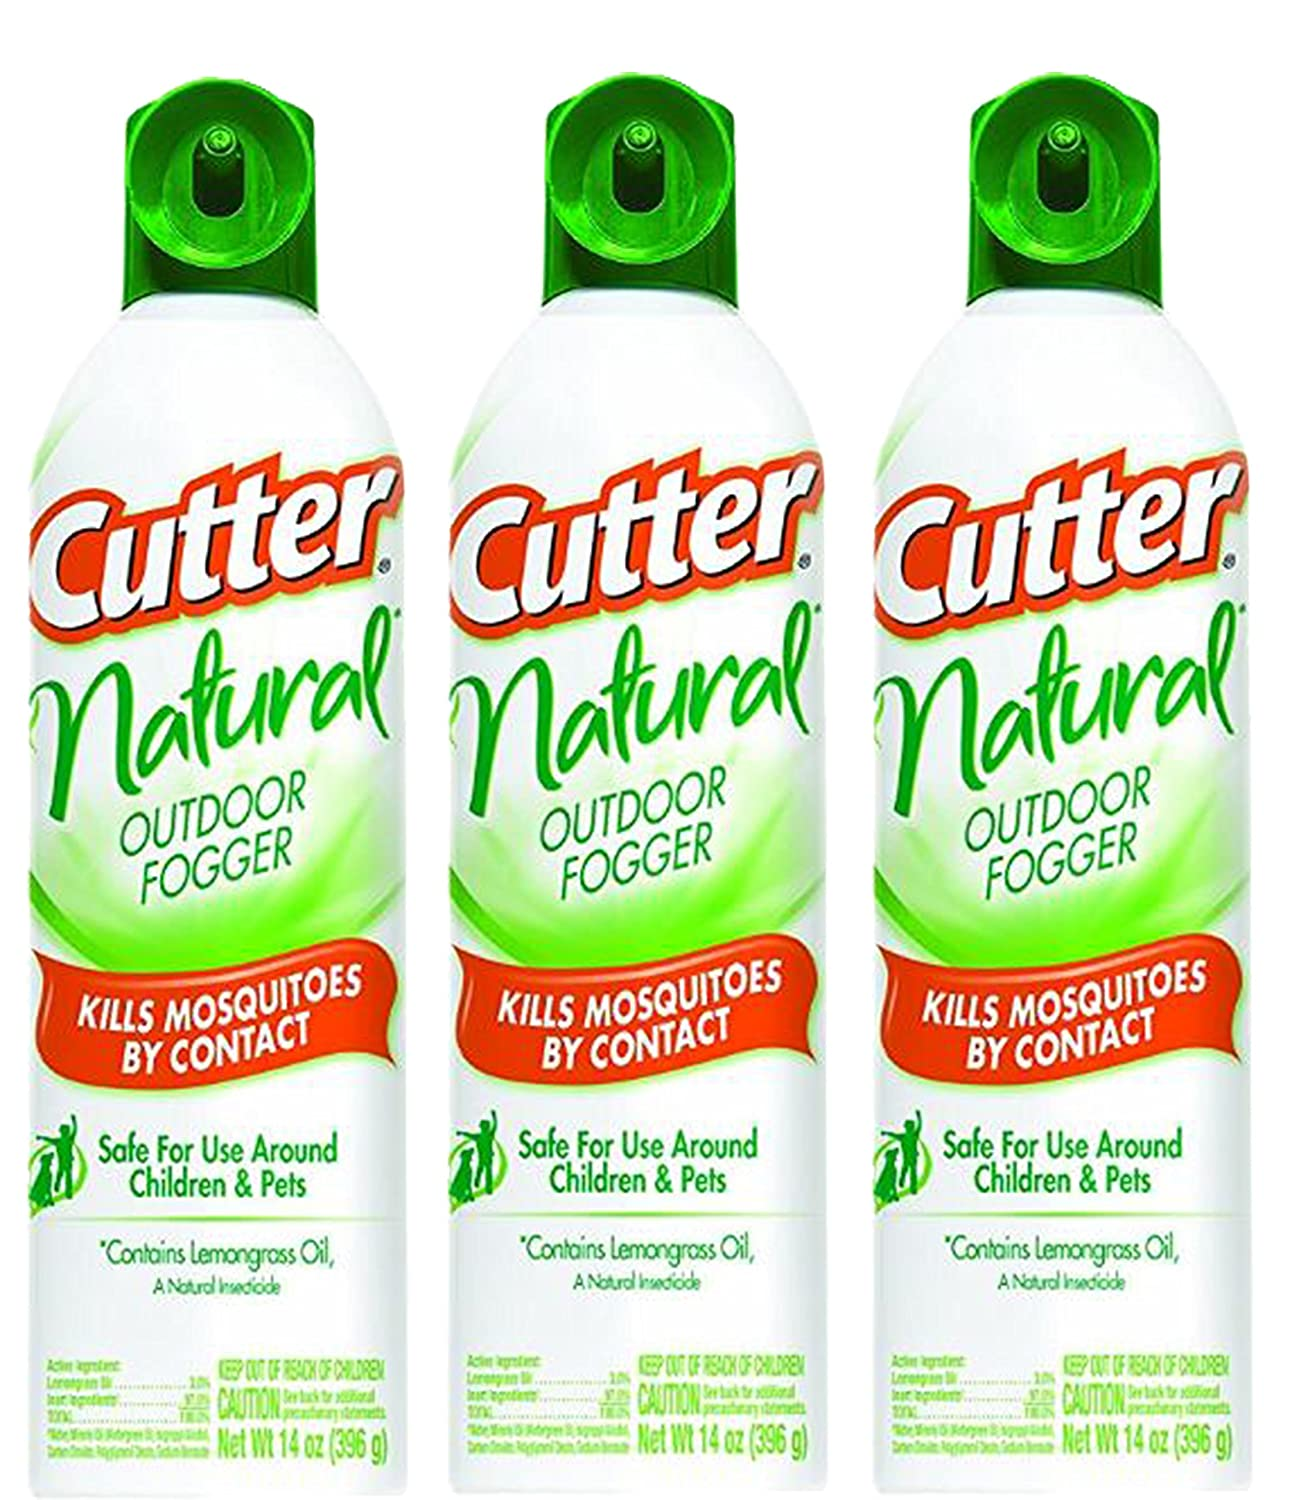 Amazoncom Cutter Natural Fogger Insect Repellent, 3 Pk14 Ozeach Can